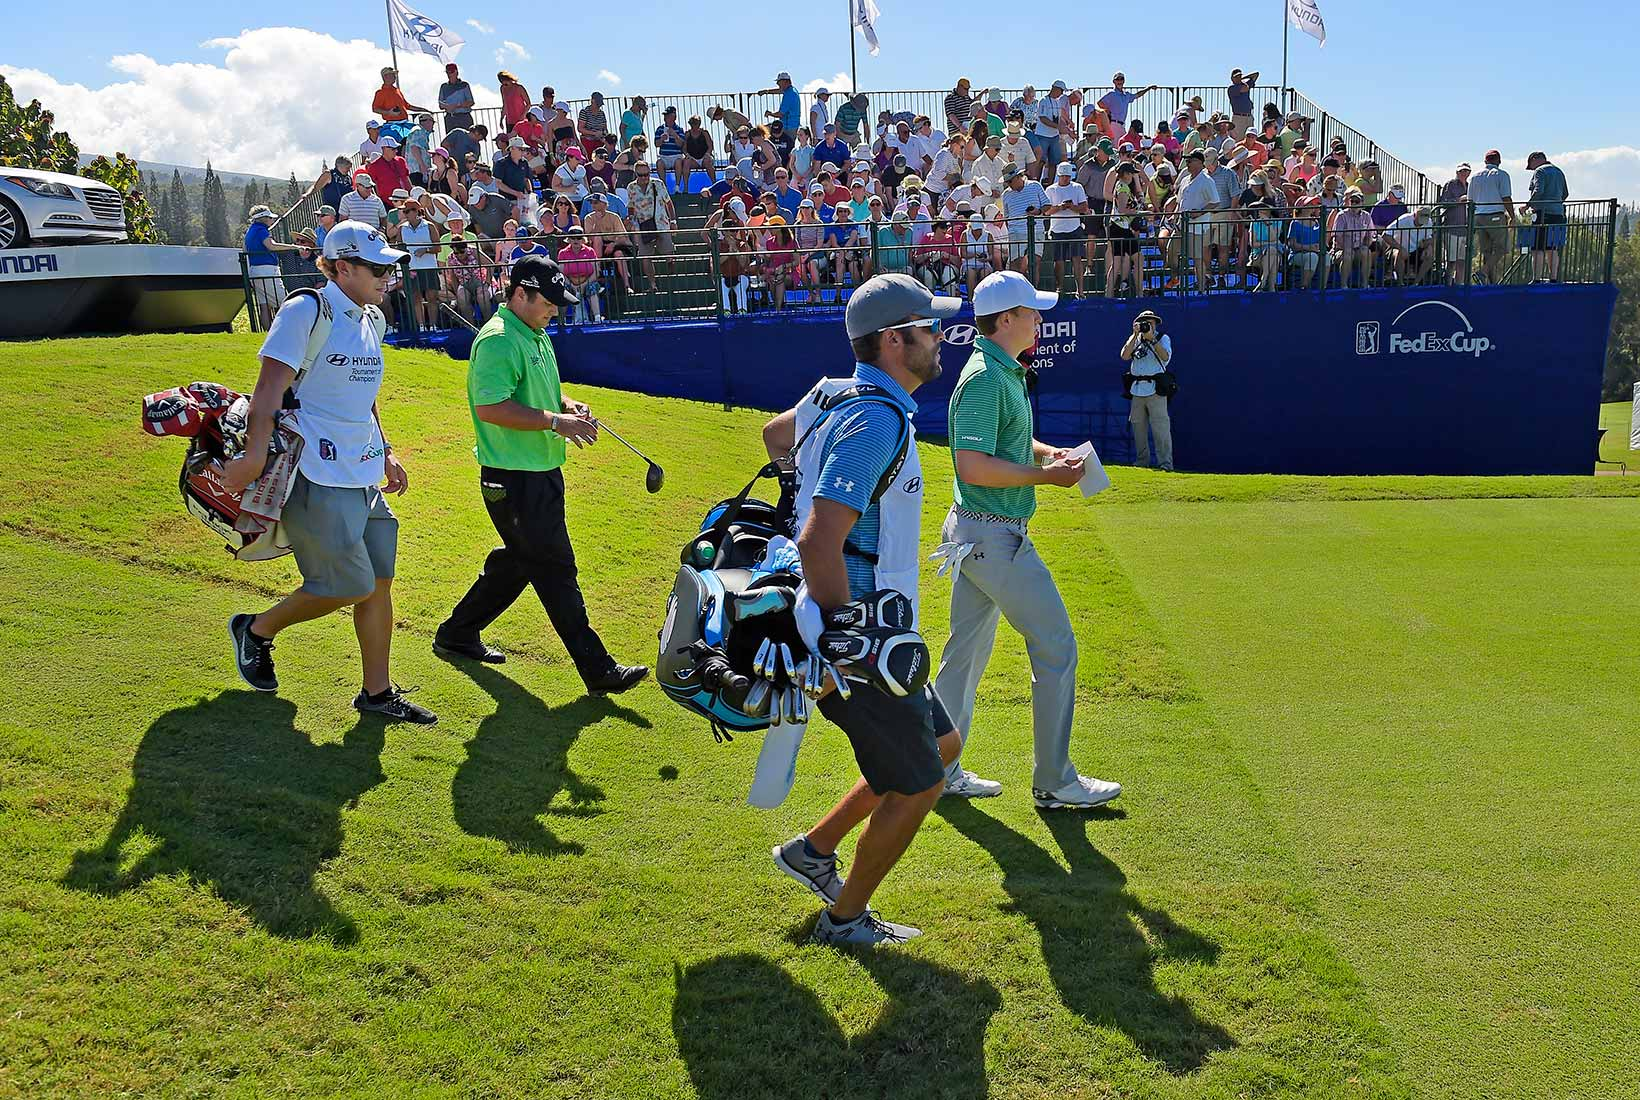 Jordan, Patrick Reed and Caddies Walk Off the First Tee During the First Round